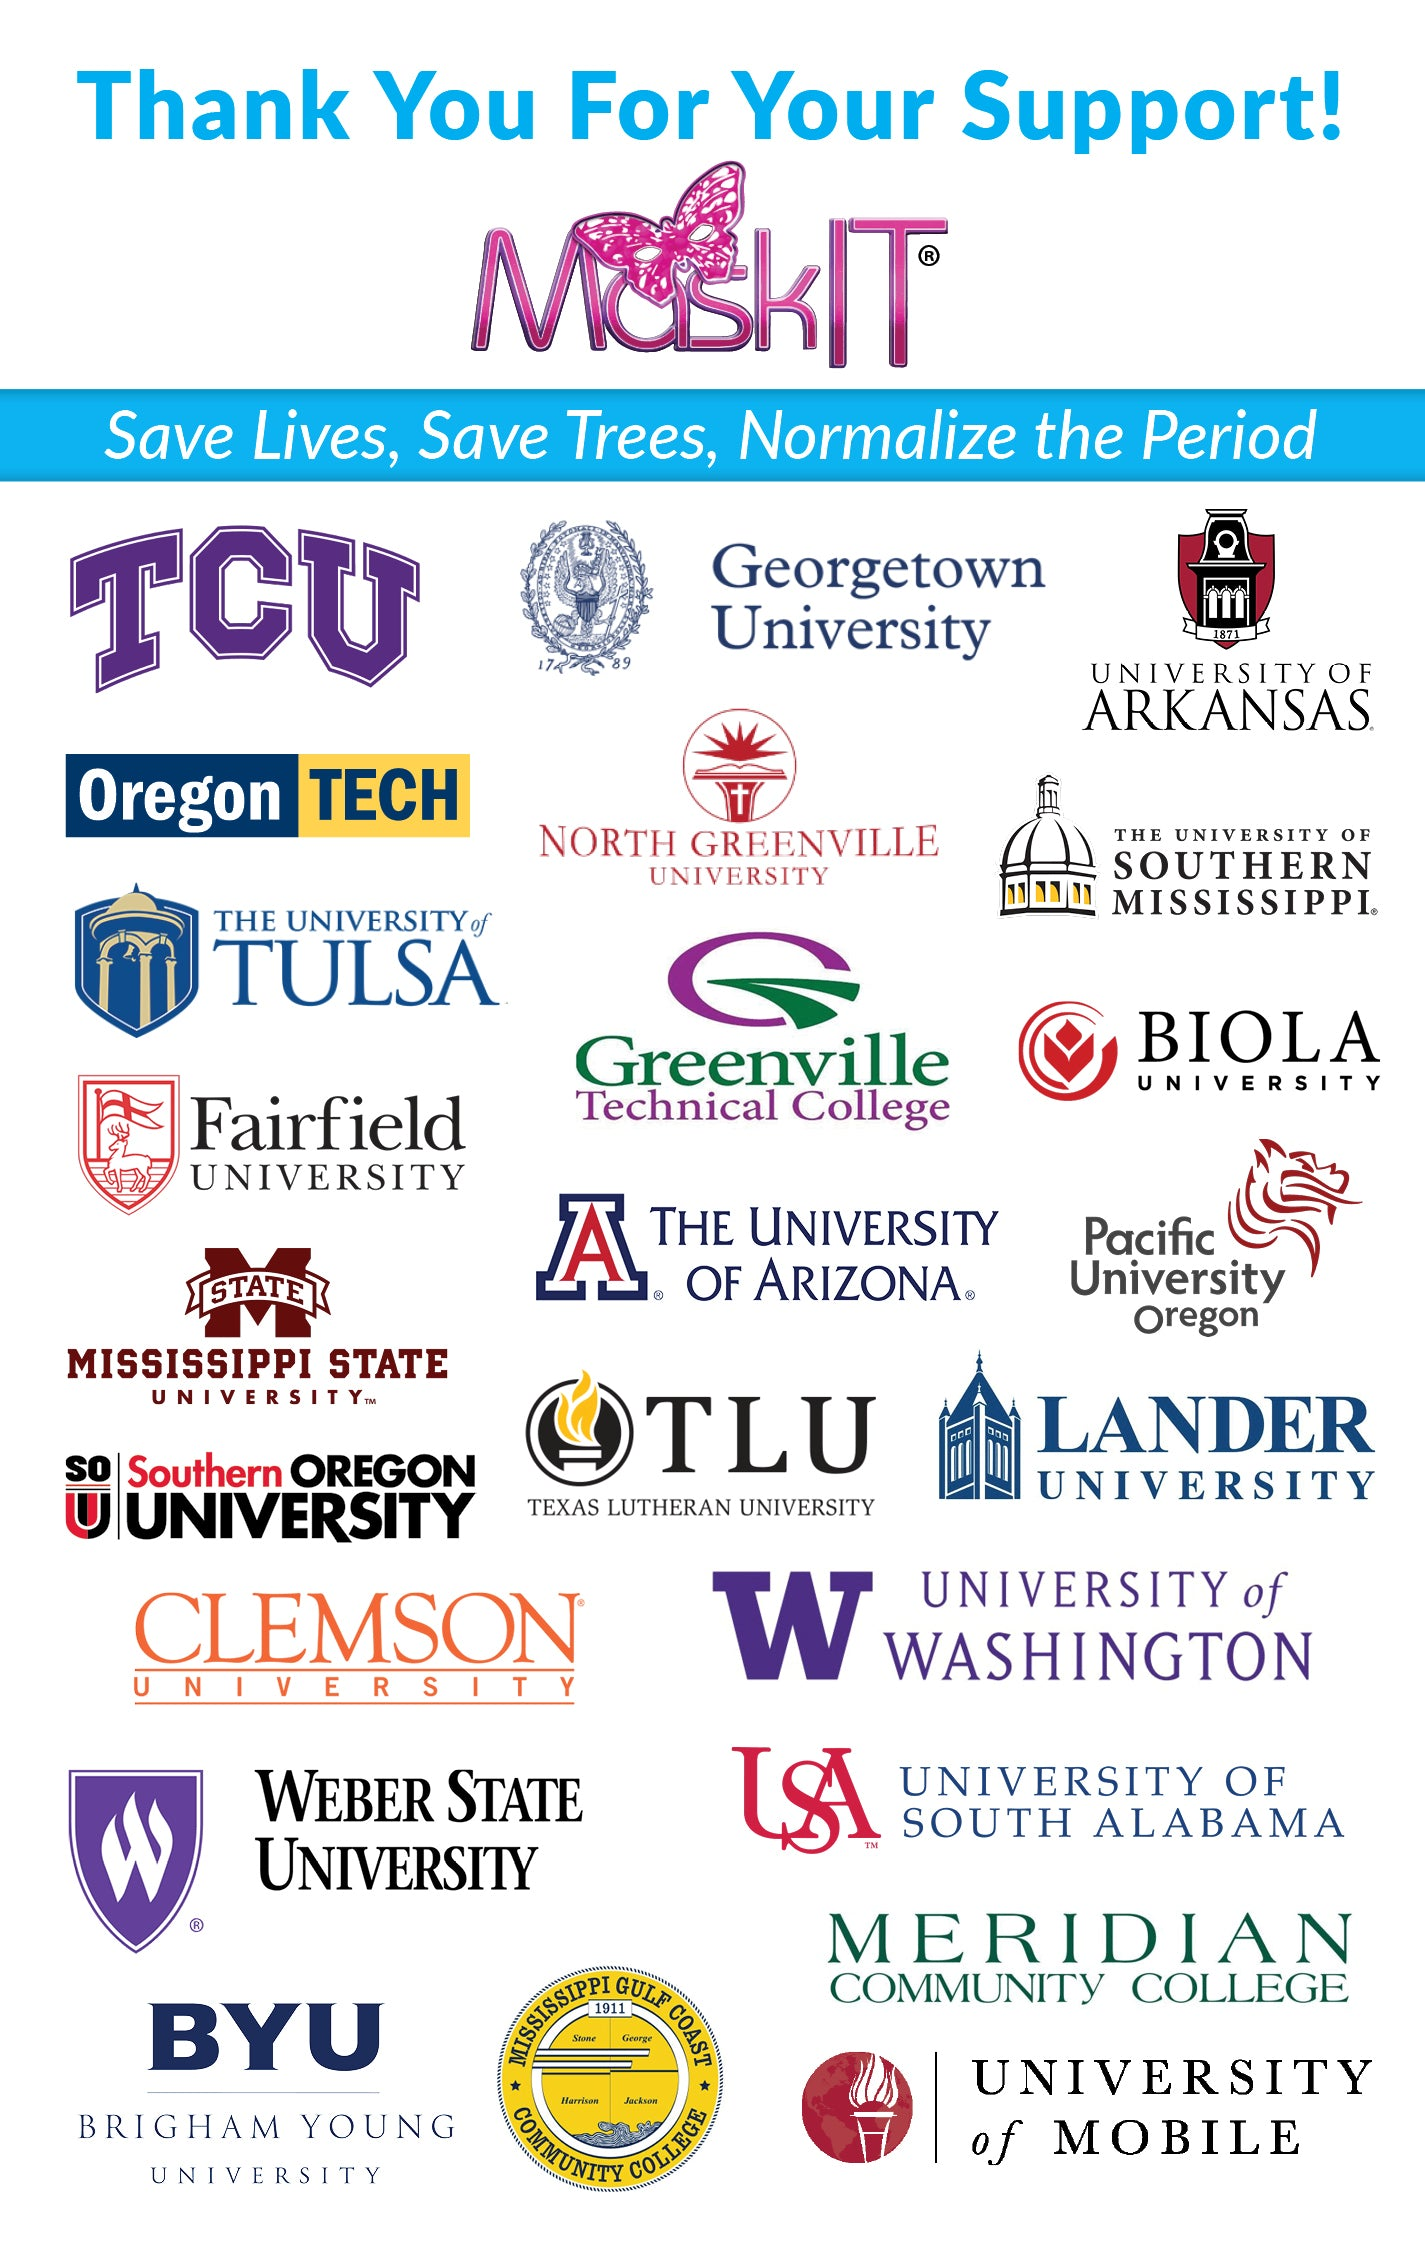 Thank you to all the Universities that have fully or partially implemented MaskIT!